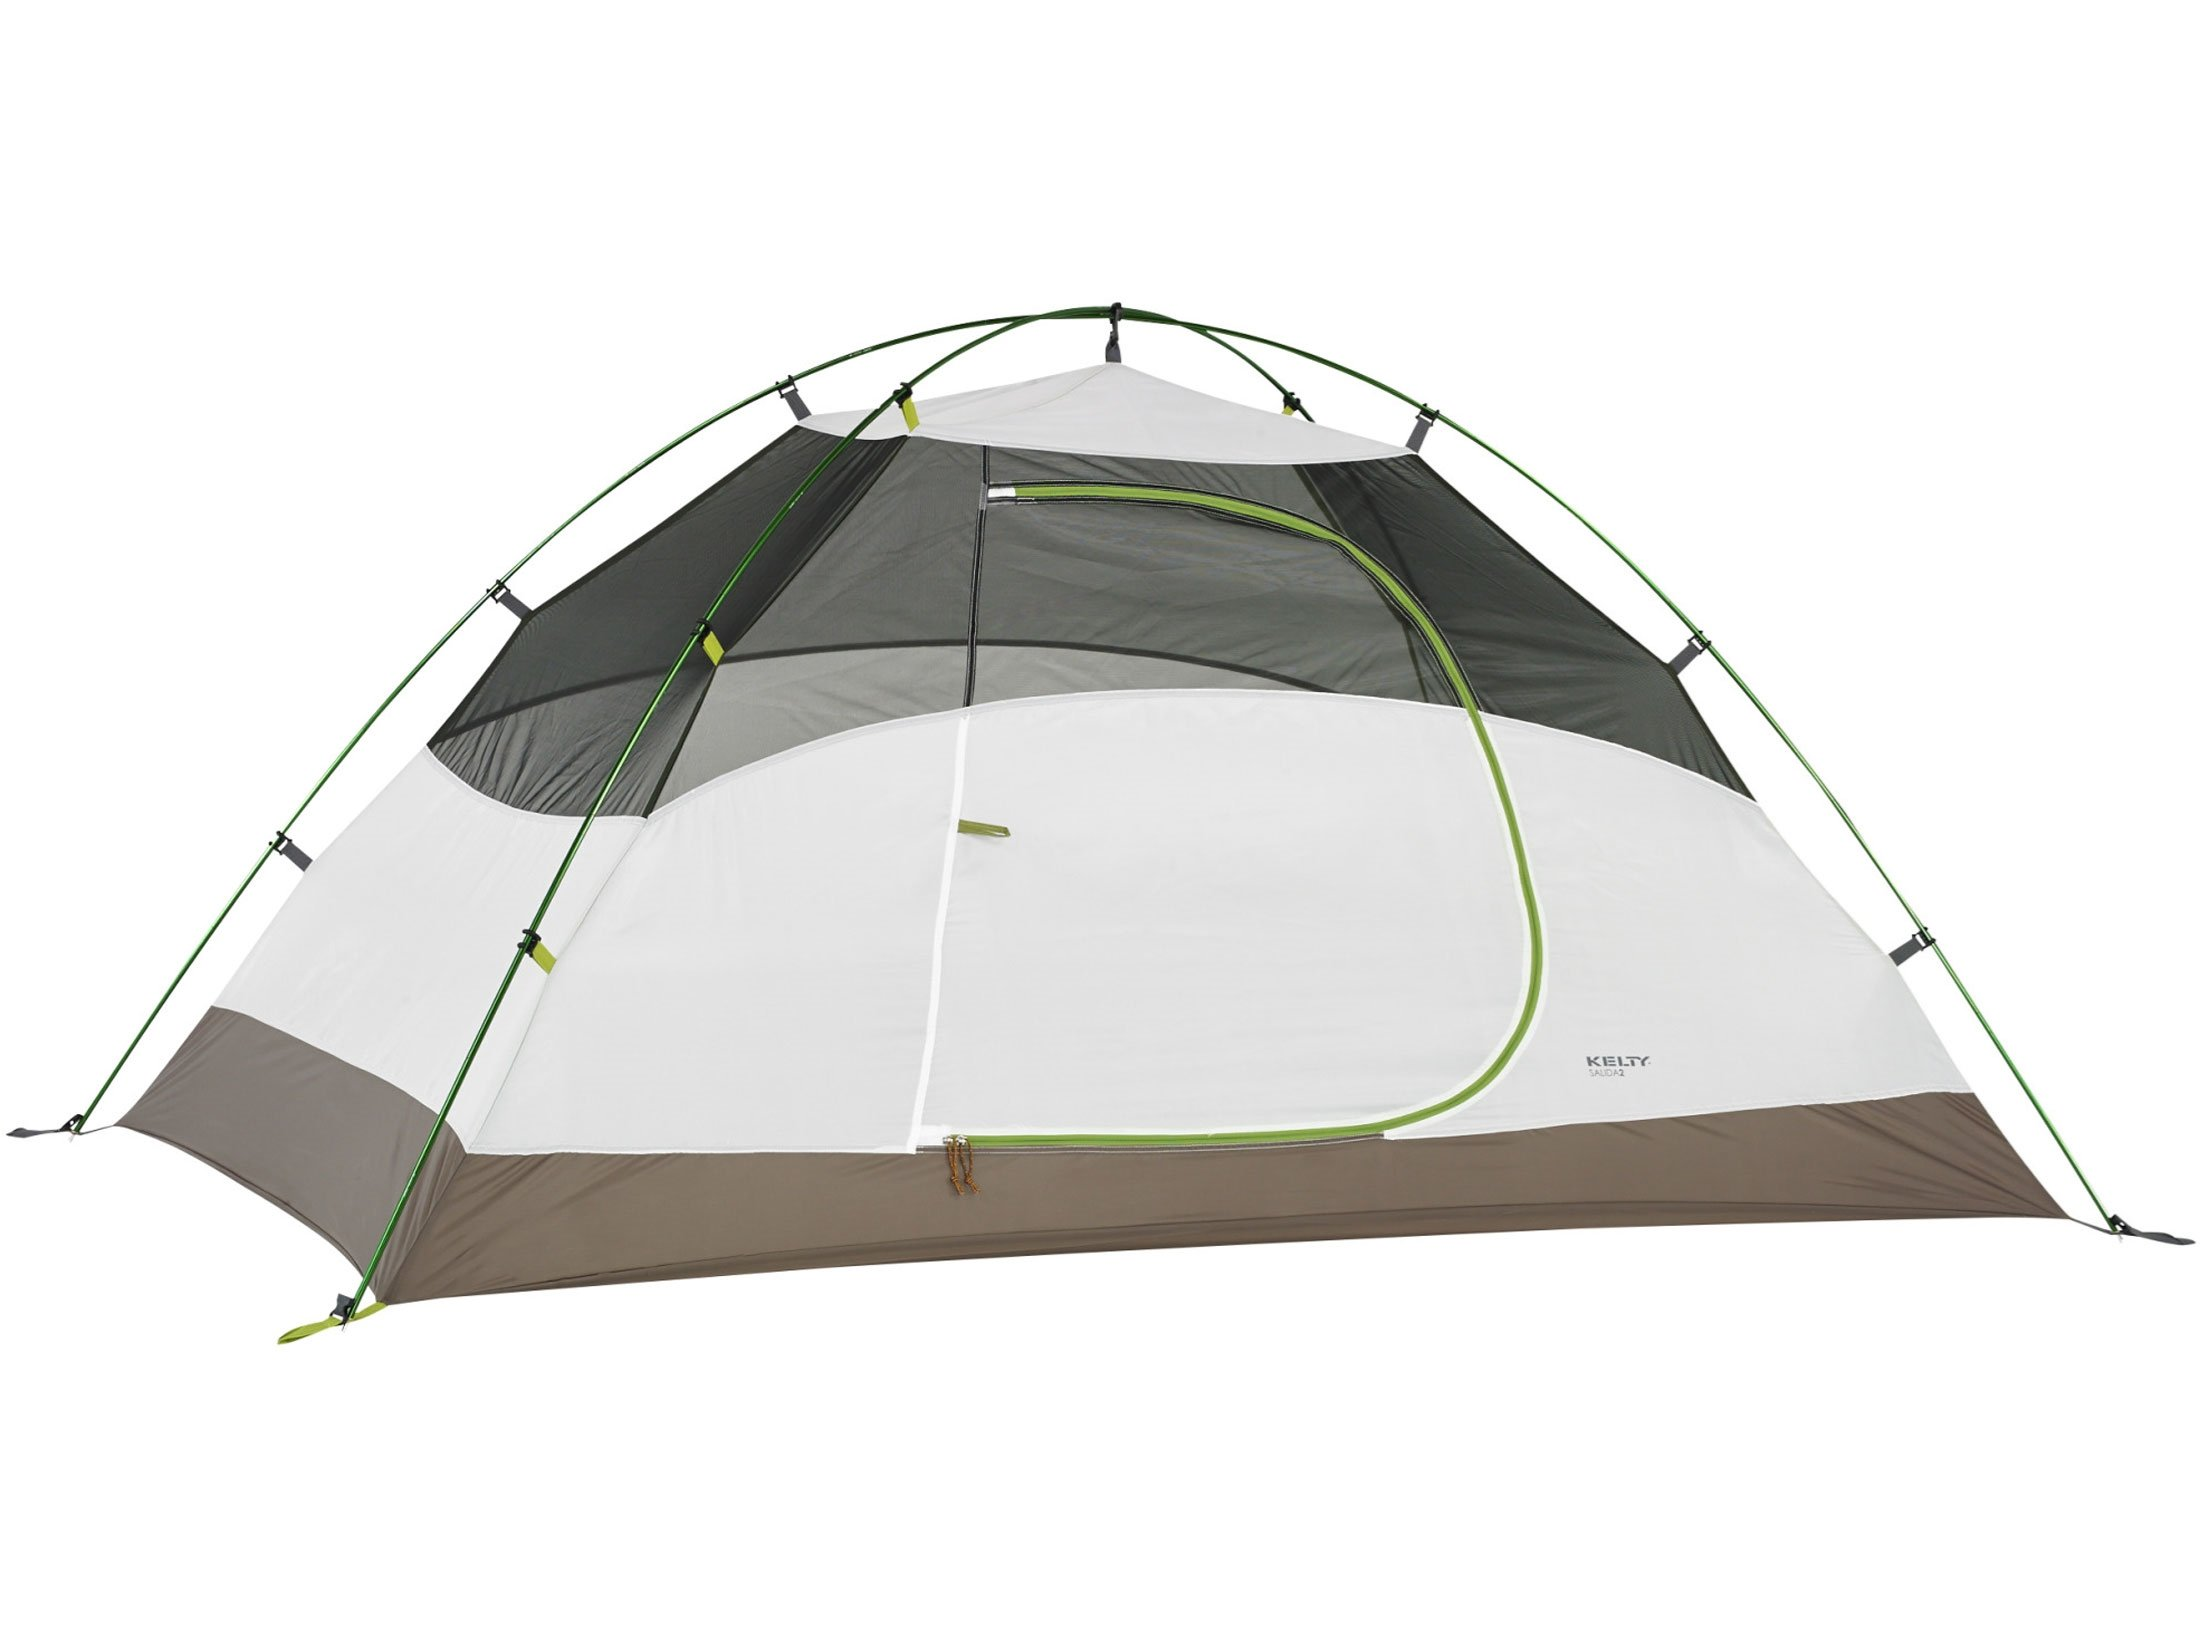 Kelty Salida 2 2 Person Dome Tent 88'' x 55/45'' x 43'' Polyester White and Lime Green